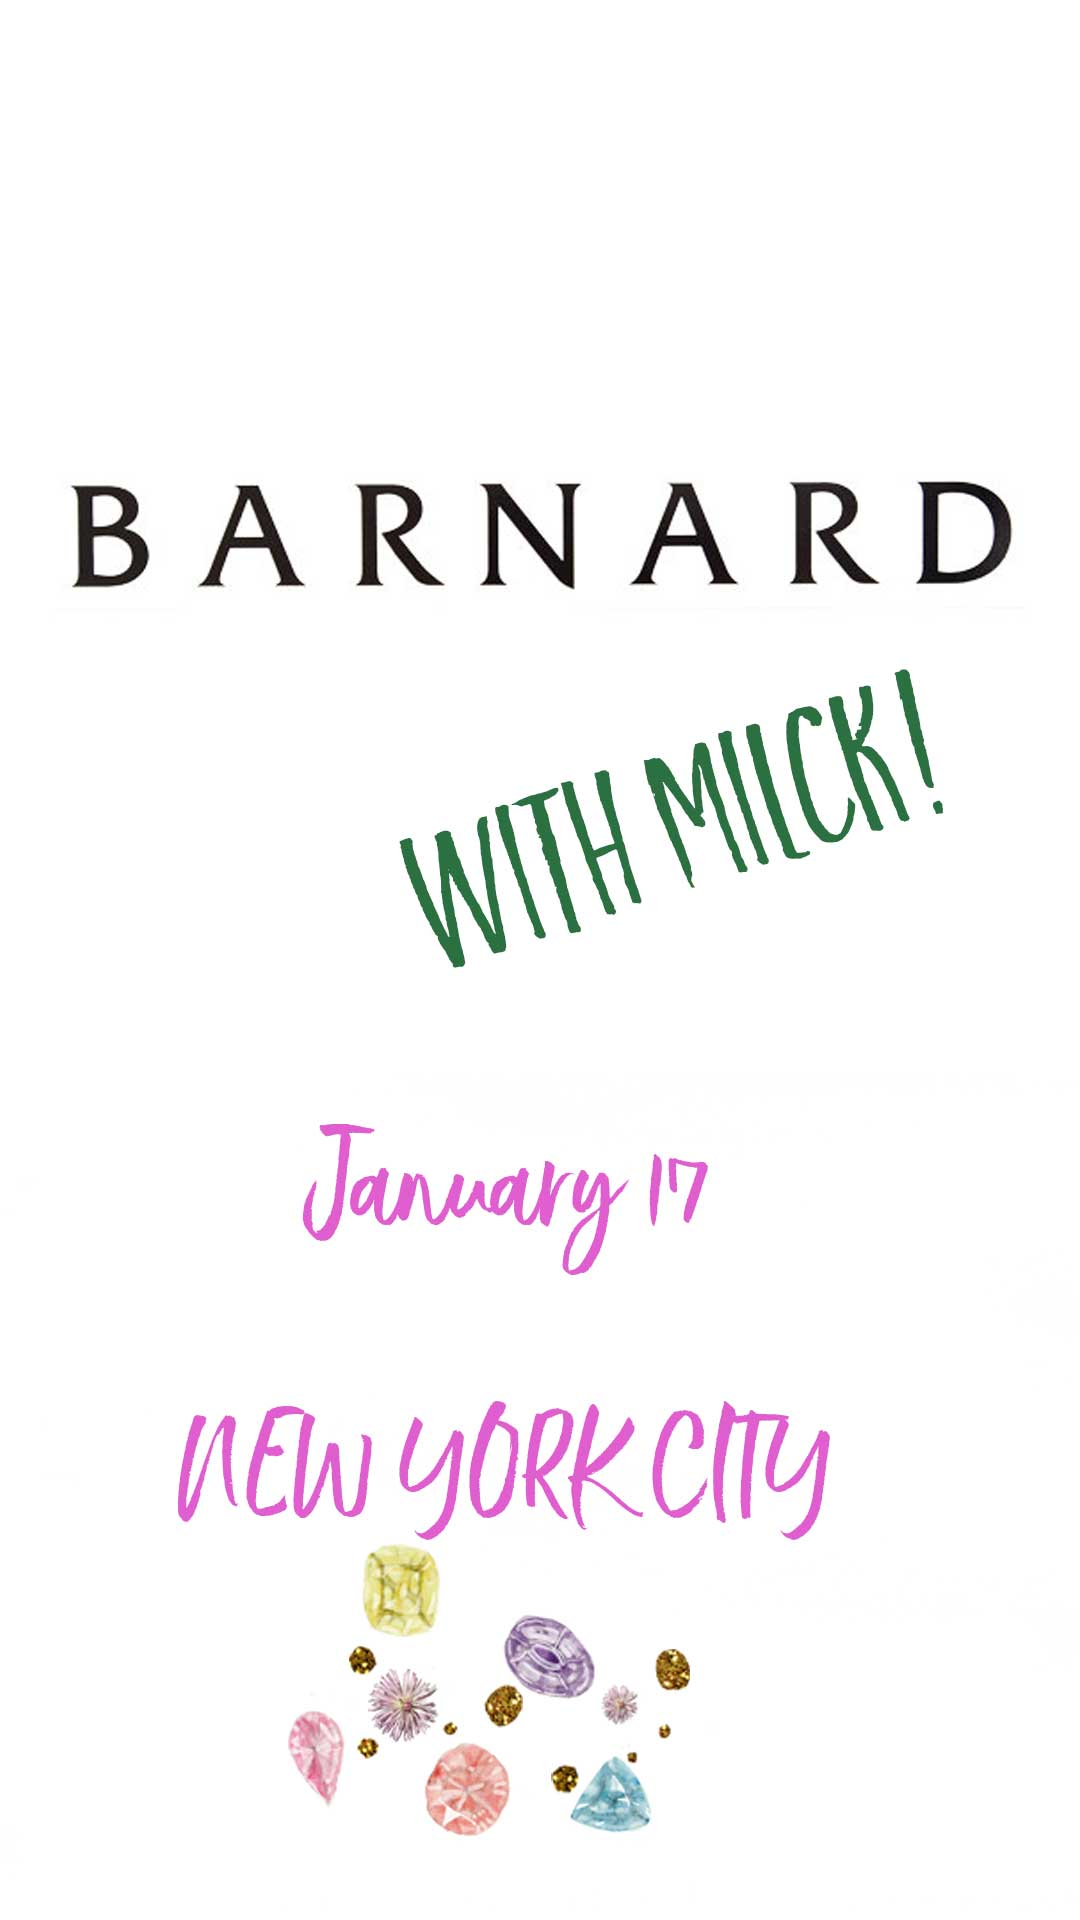 Barnard College NYC